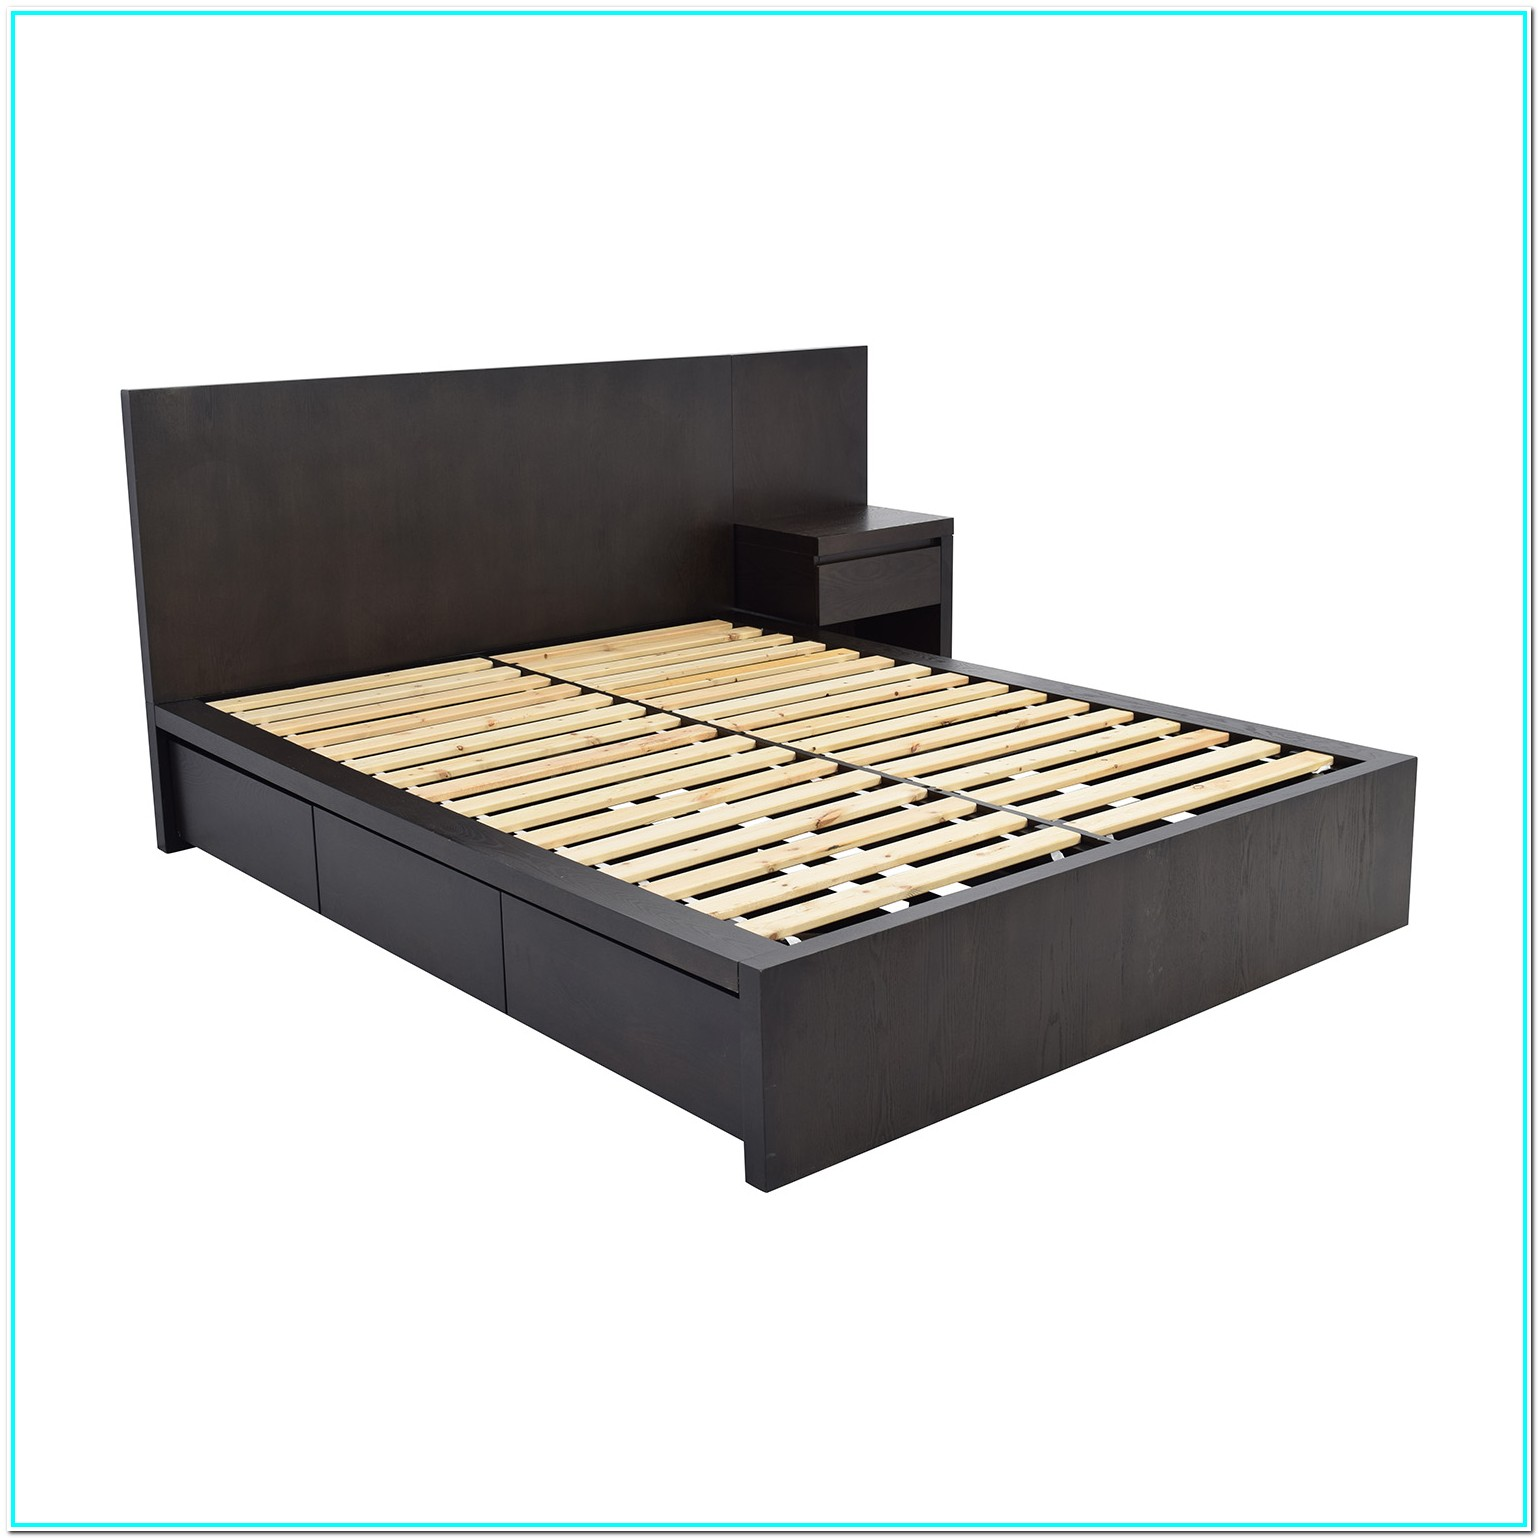 Queen Platform Bed Frame With Headboard And Footboard